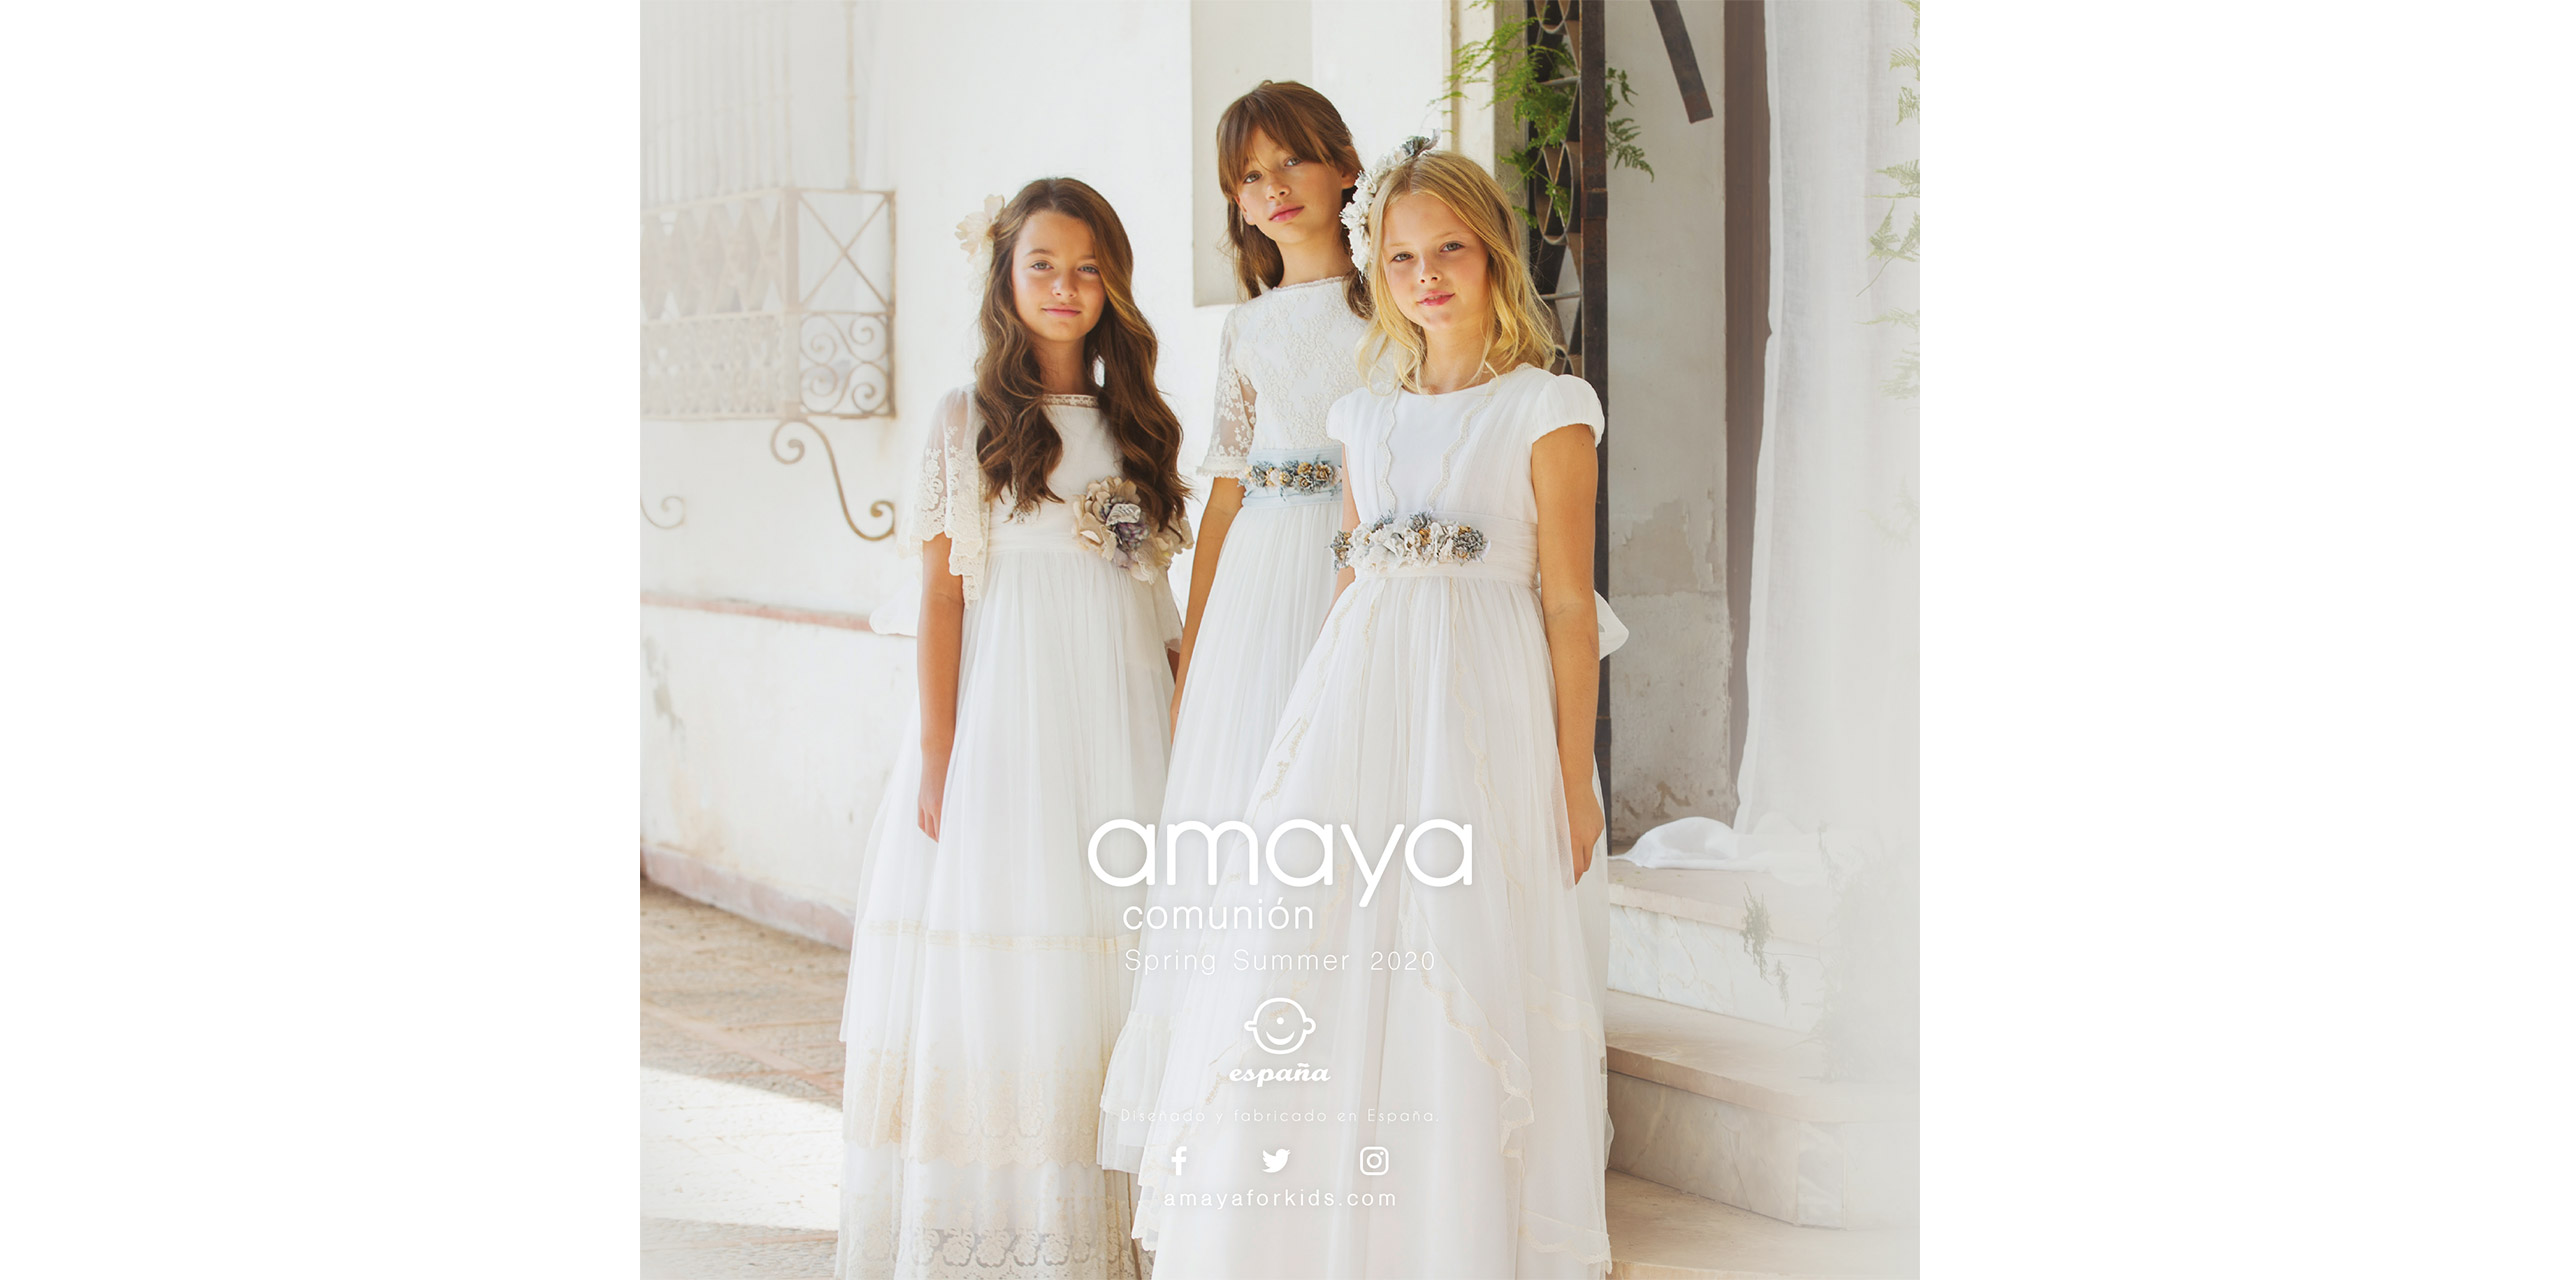 amaya-comunion-catalogo-2p-13